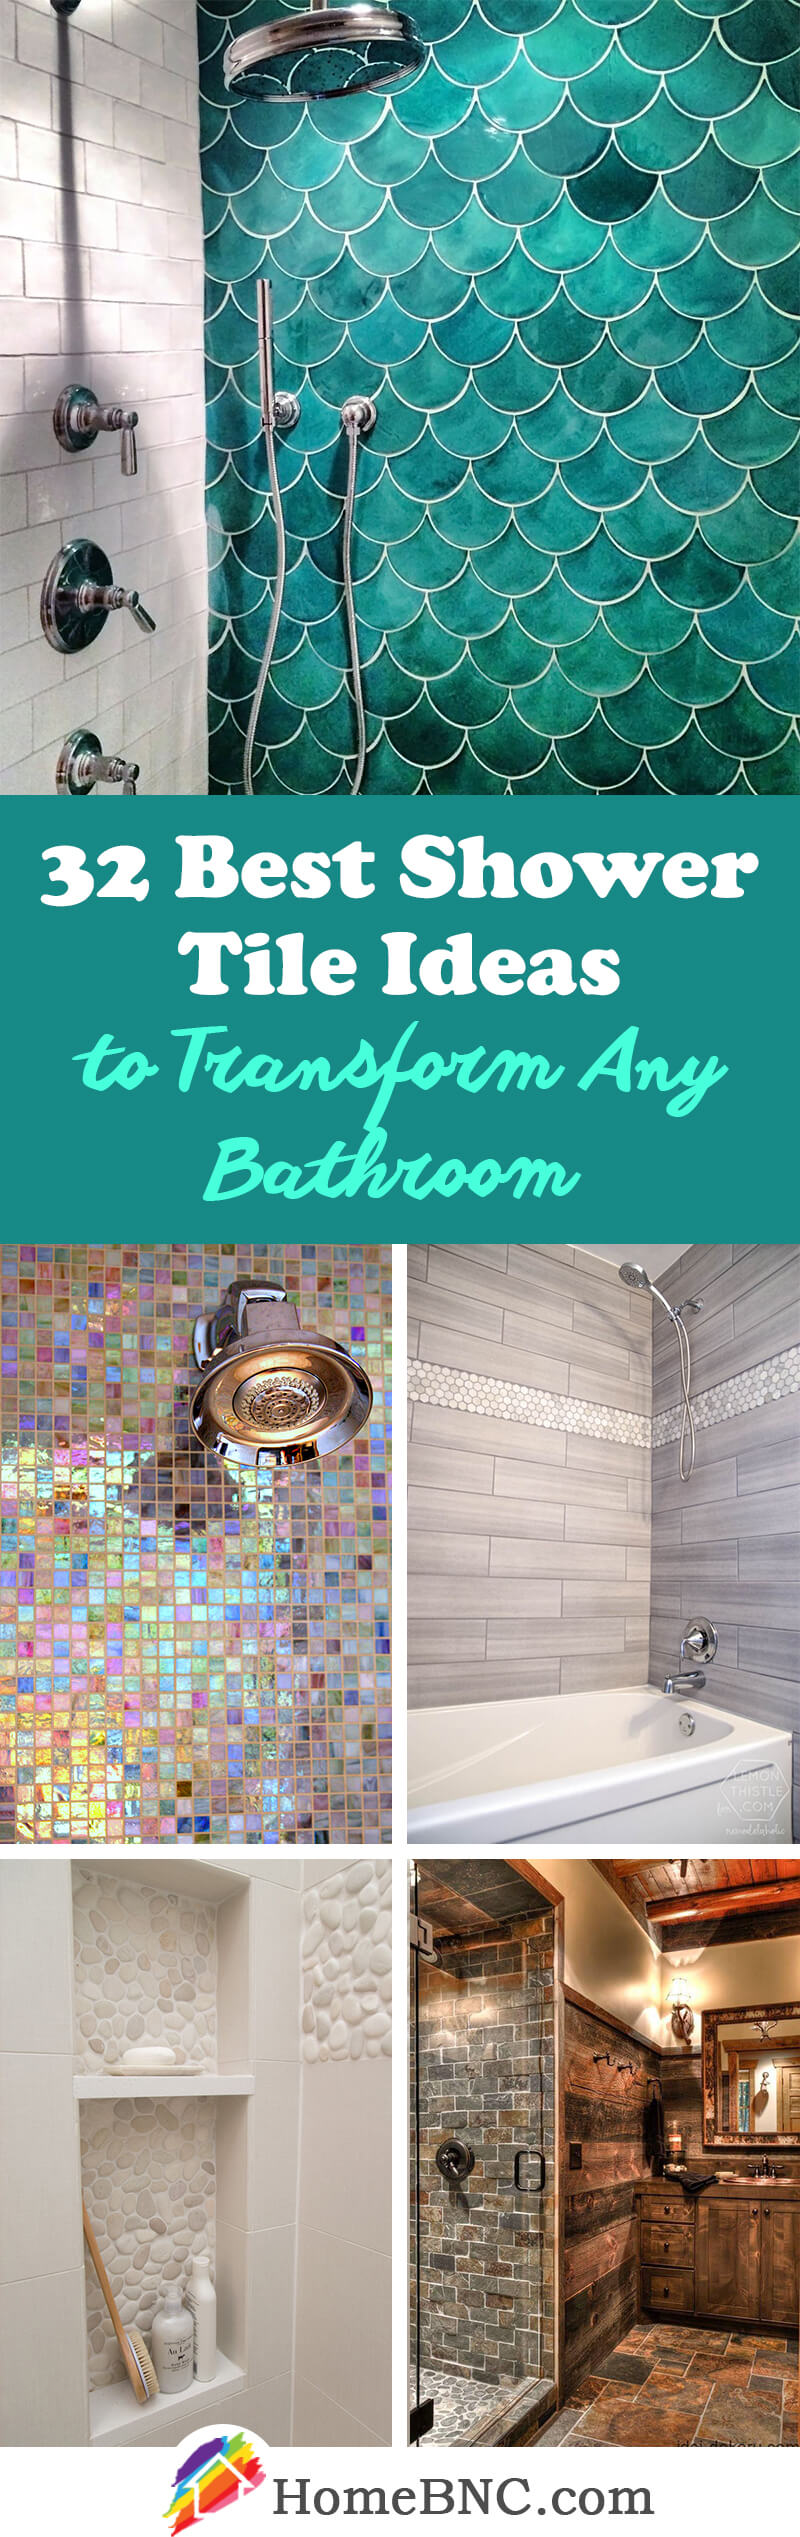 Shower Tile Design Ideas